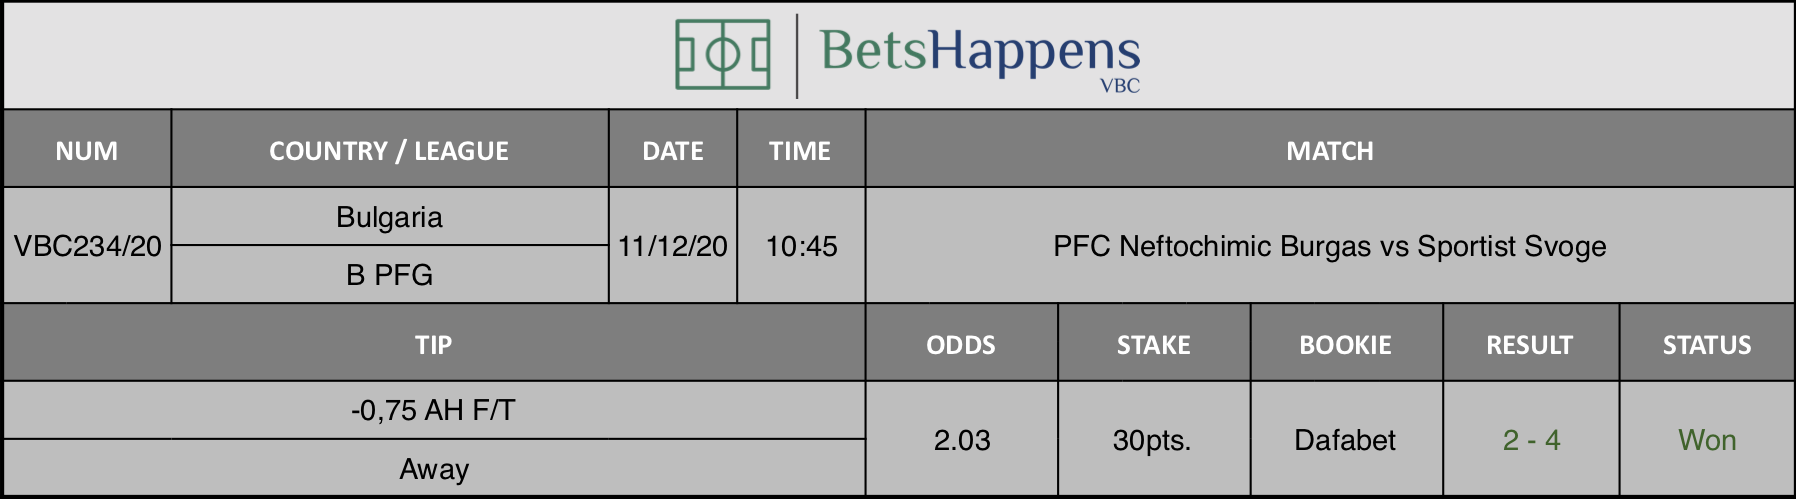 Results of our tip for the PFC Neftochimic Burgas vs Sportist Svoge match where -0,75 AH F/T Away is recommended.